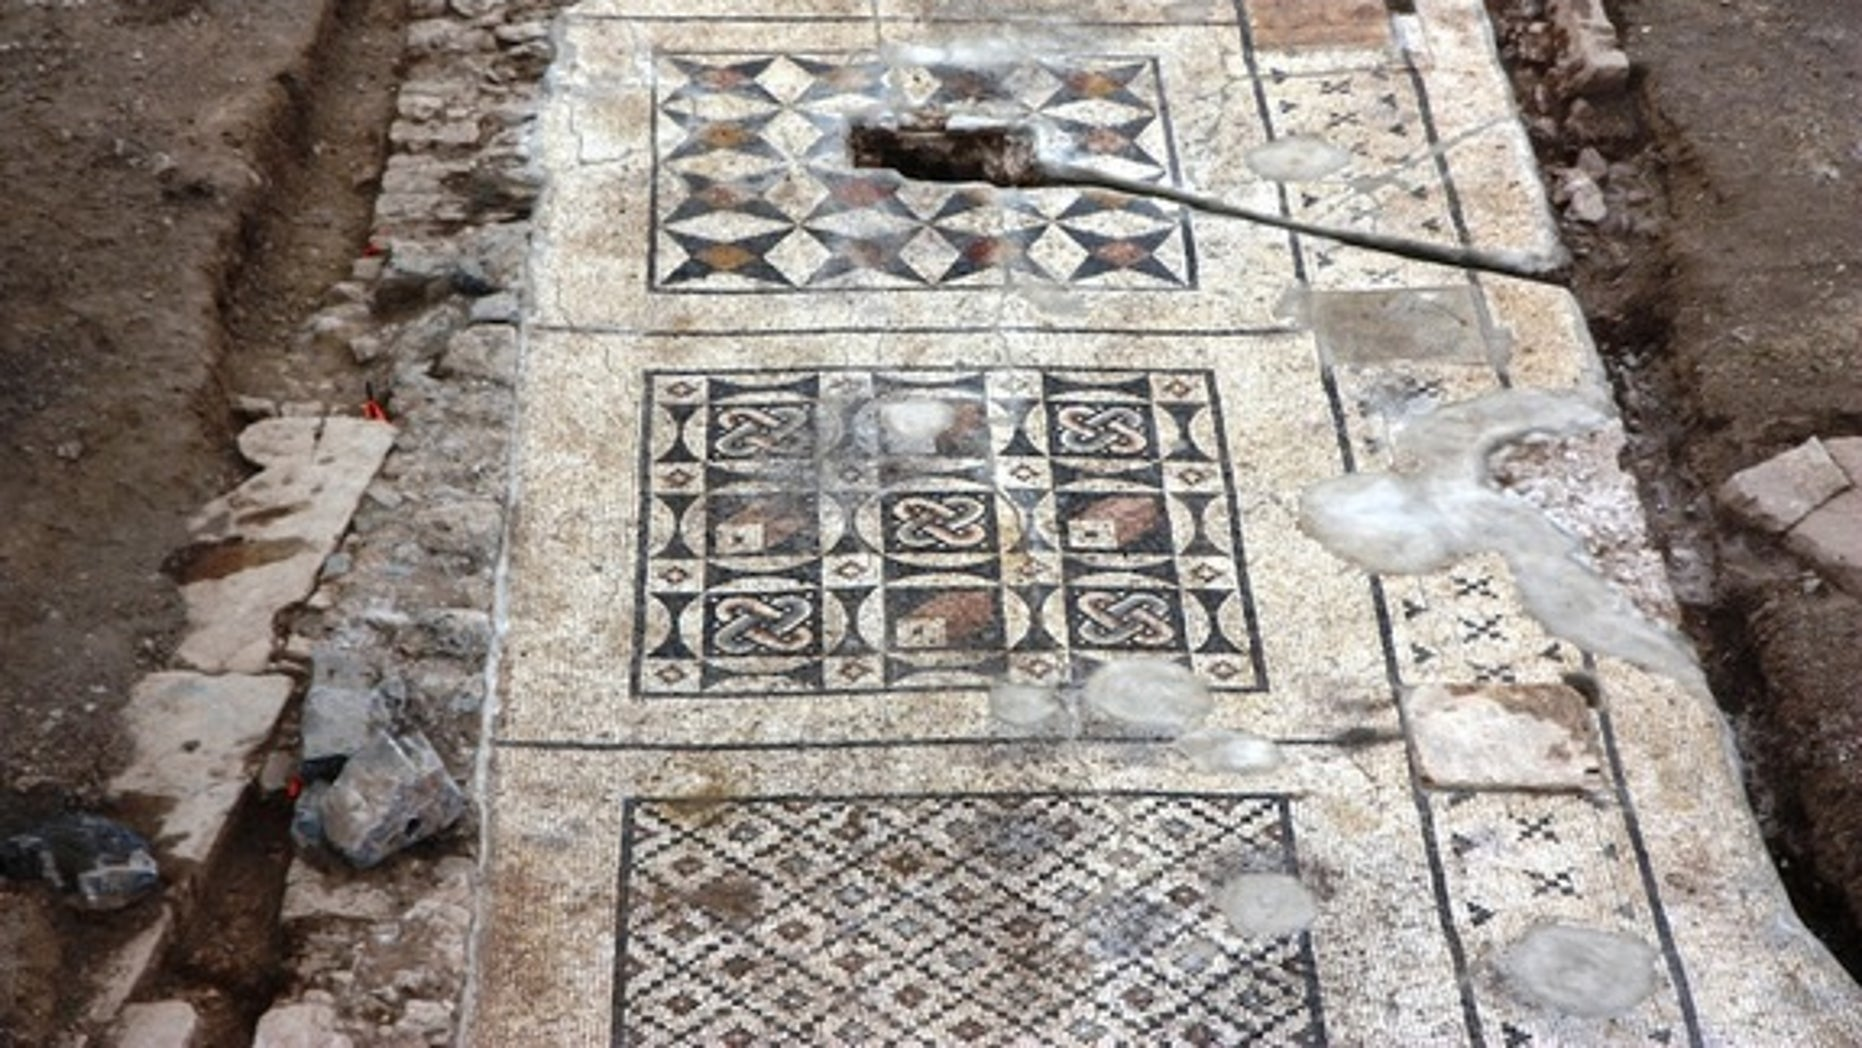 Each section of the mosaic features its own geometric design.